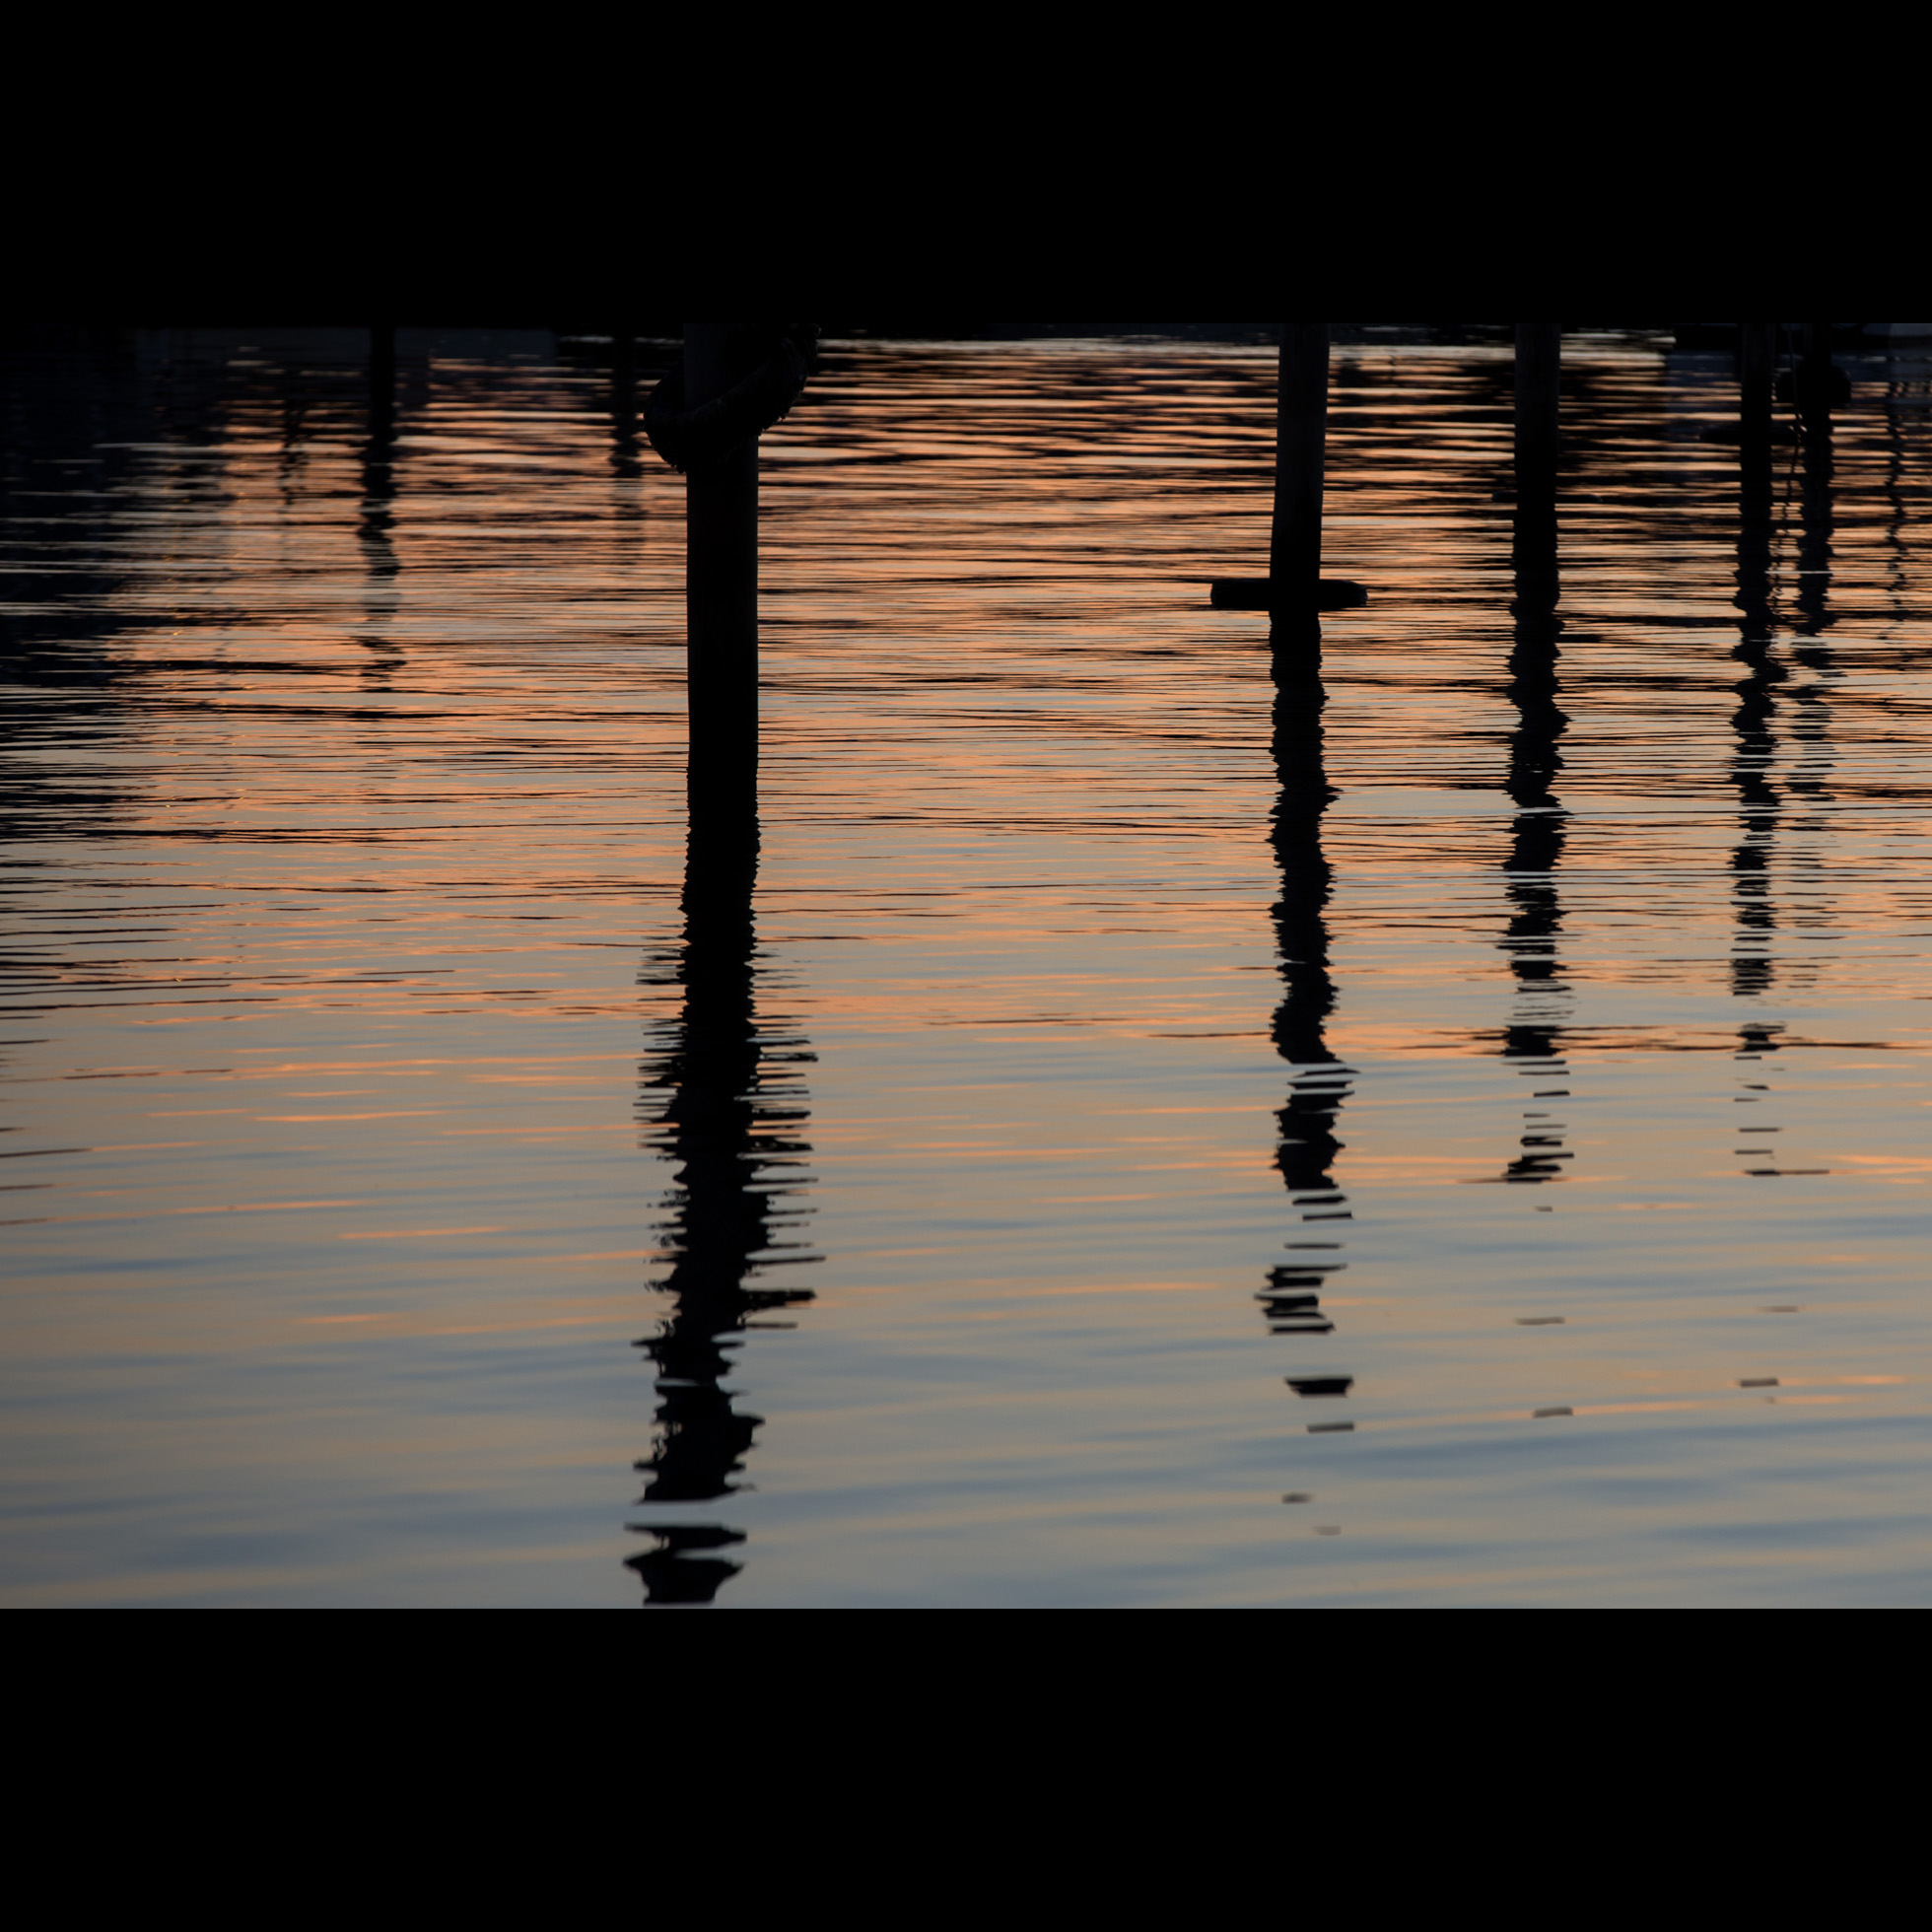 11.29 PIER REFLECTIONS